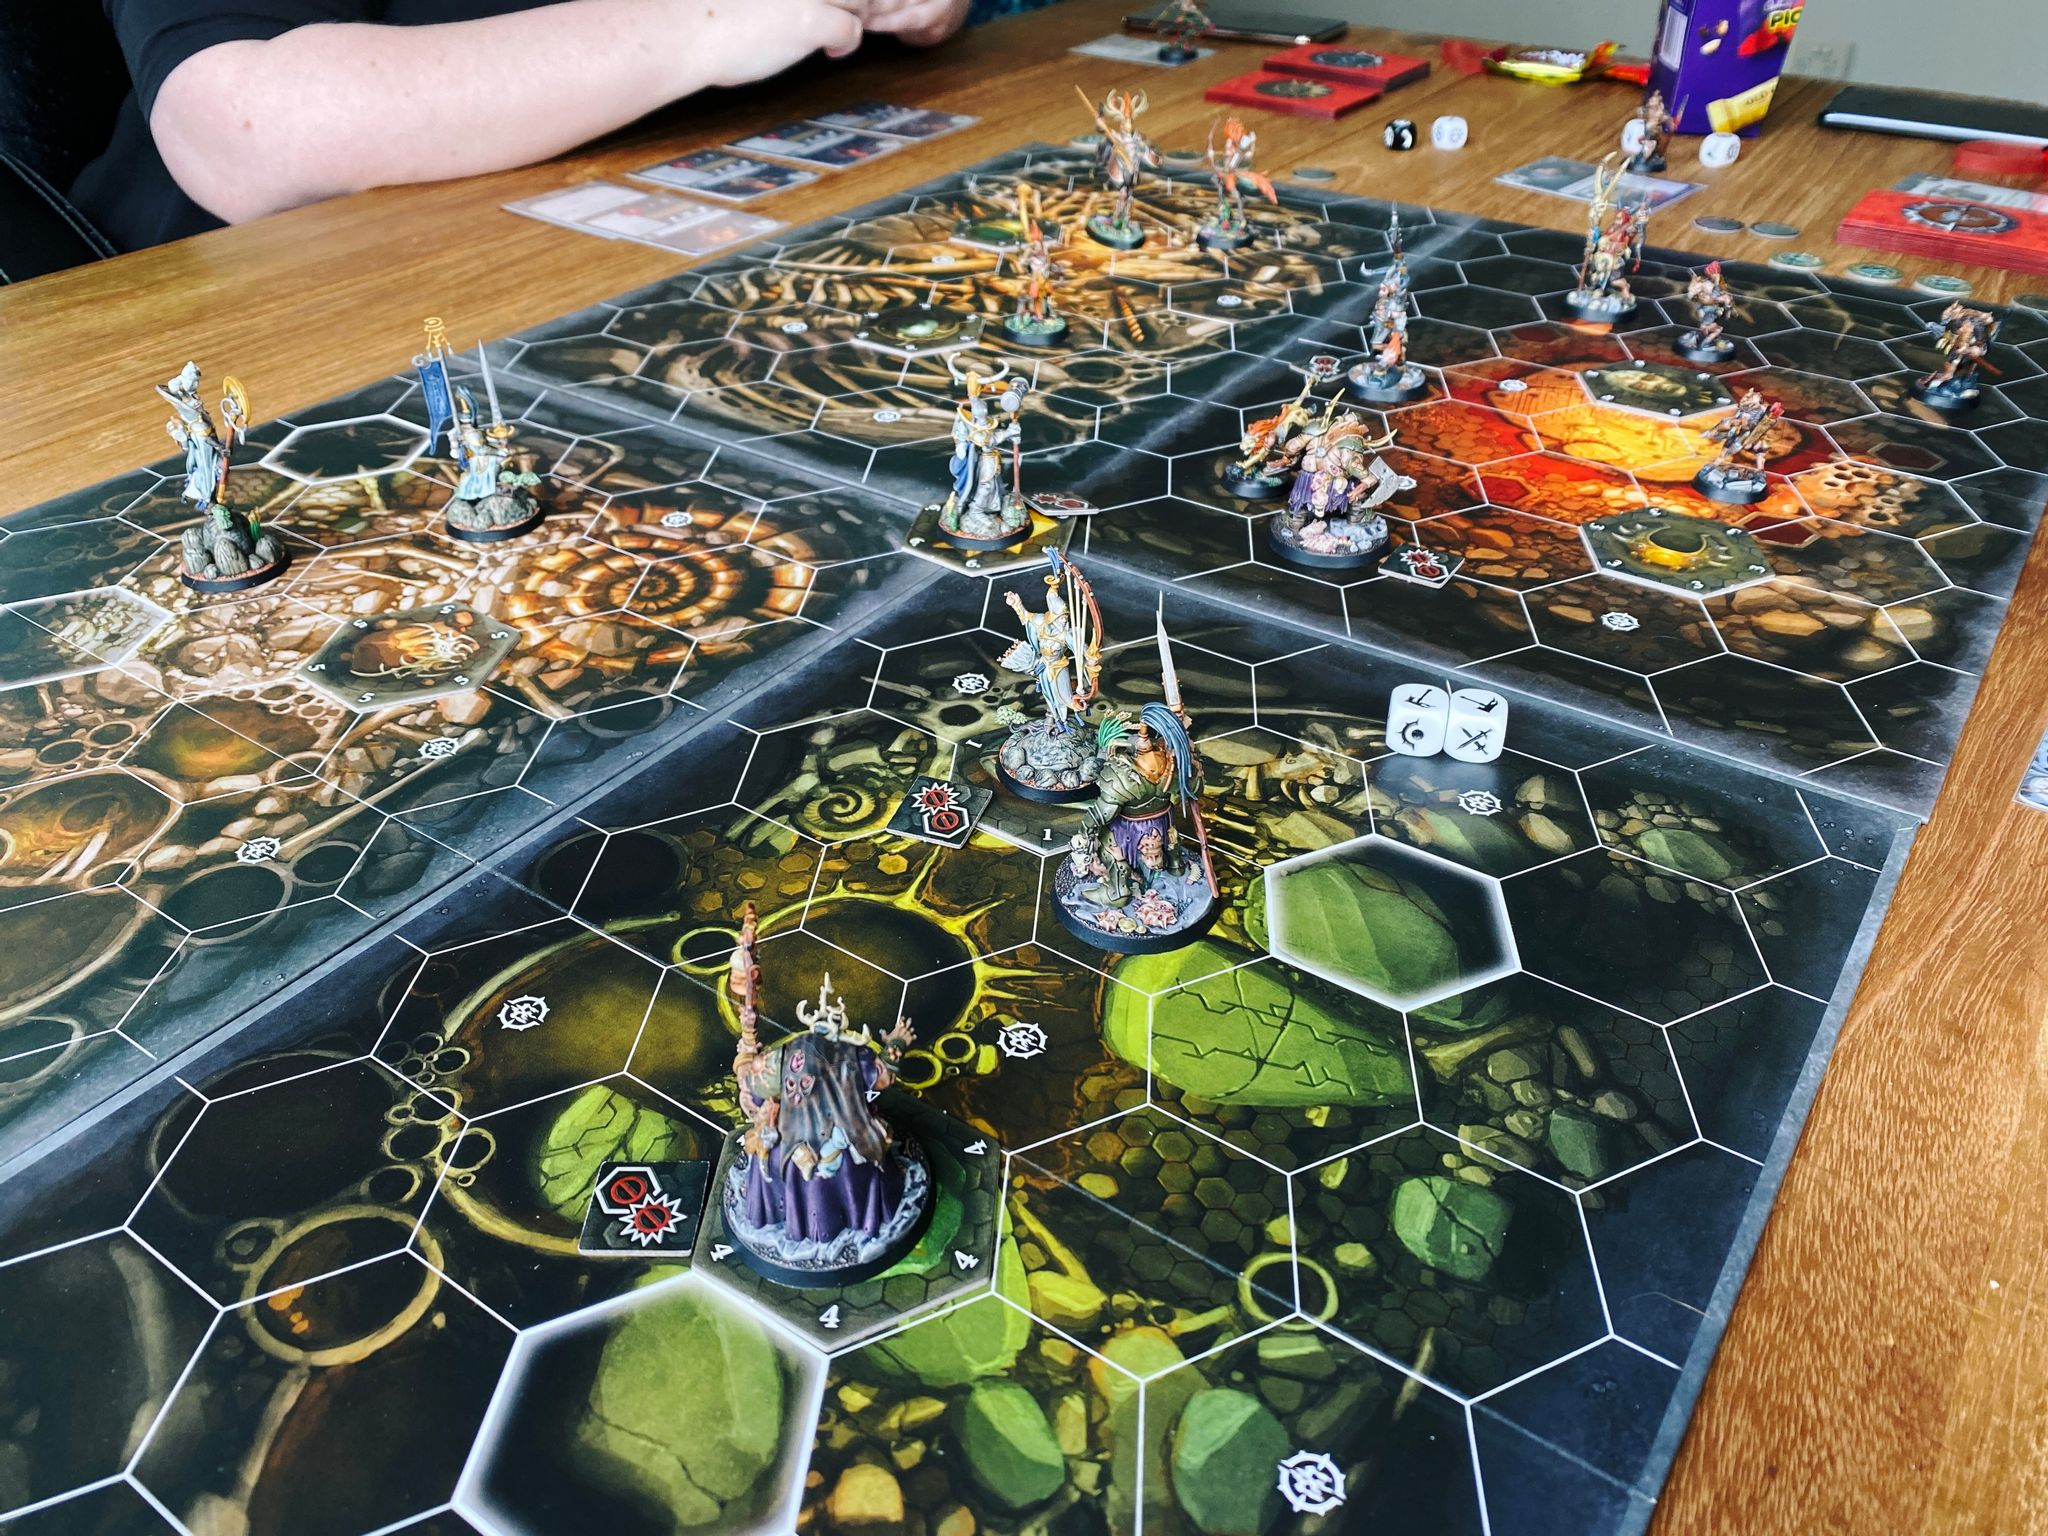 A photo of a four-player game of Warhammer Underworlds. There's four boards with hexagonal tiles marked on them connected together with plenty of miniatures in the middle of combat.